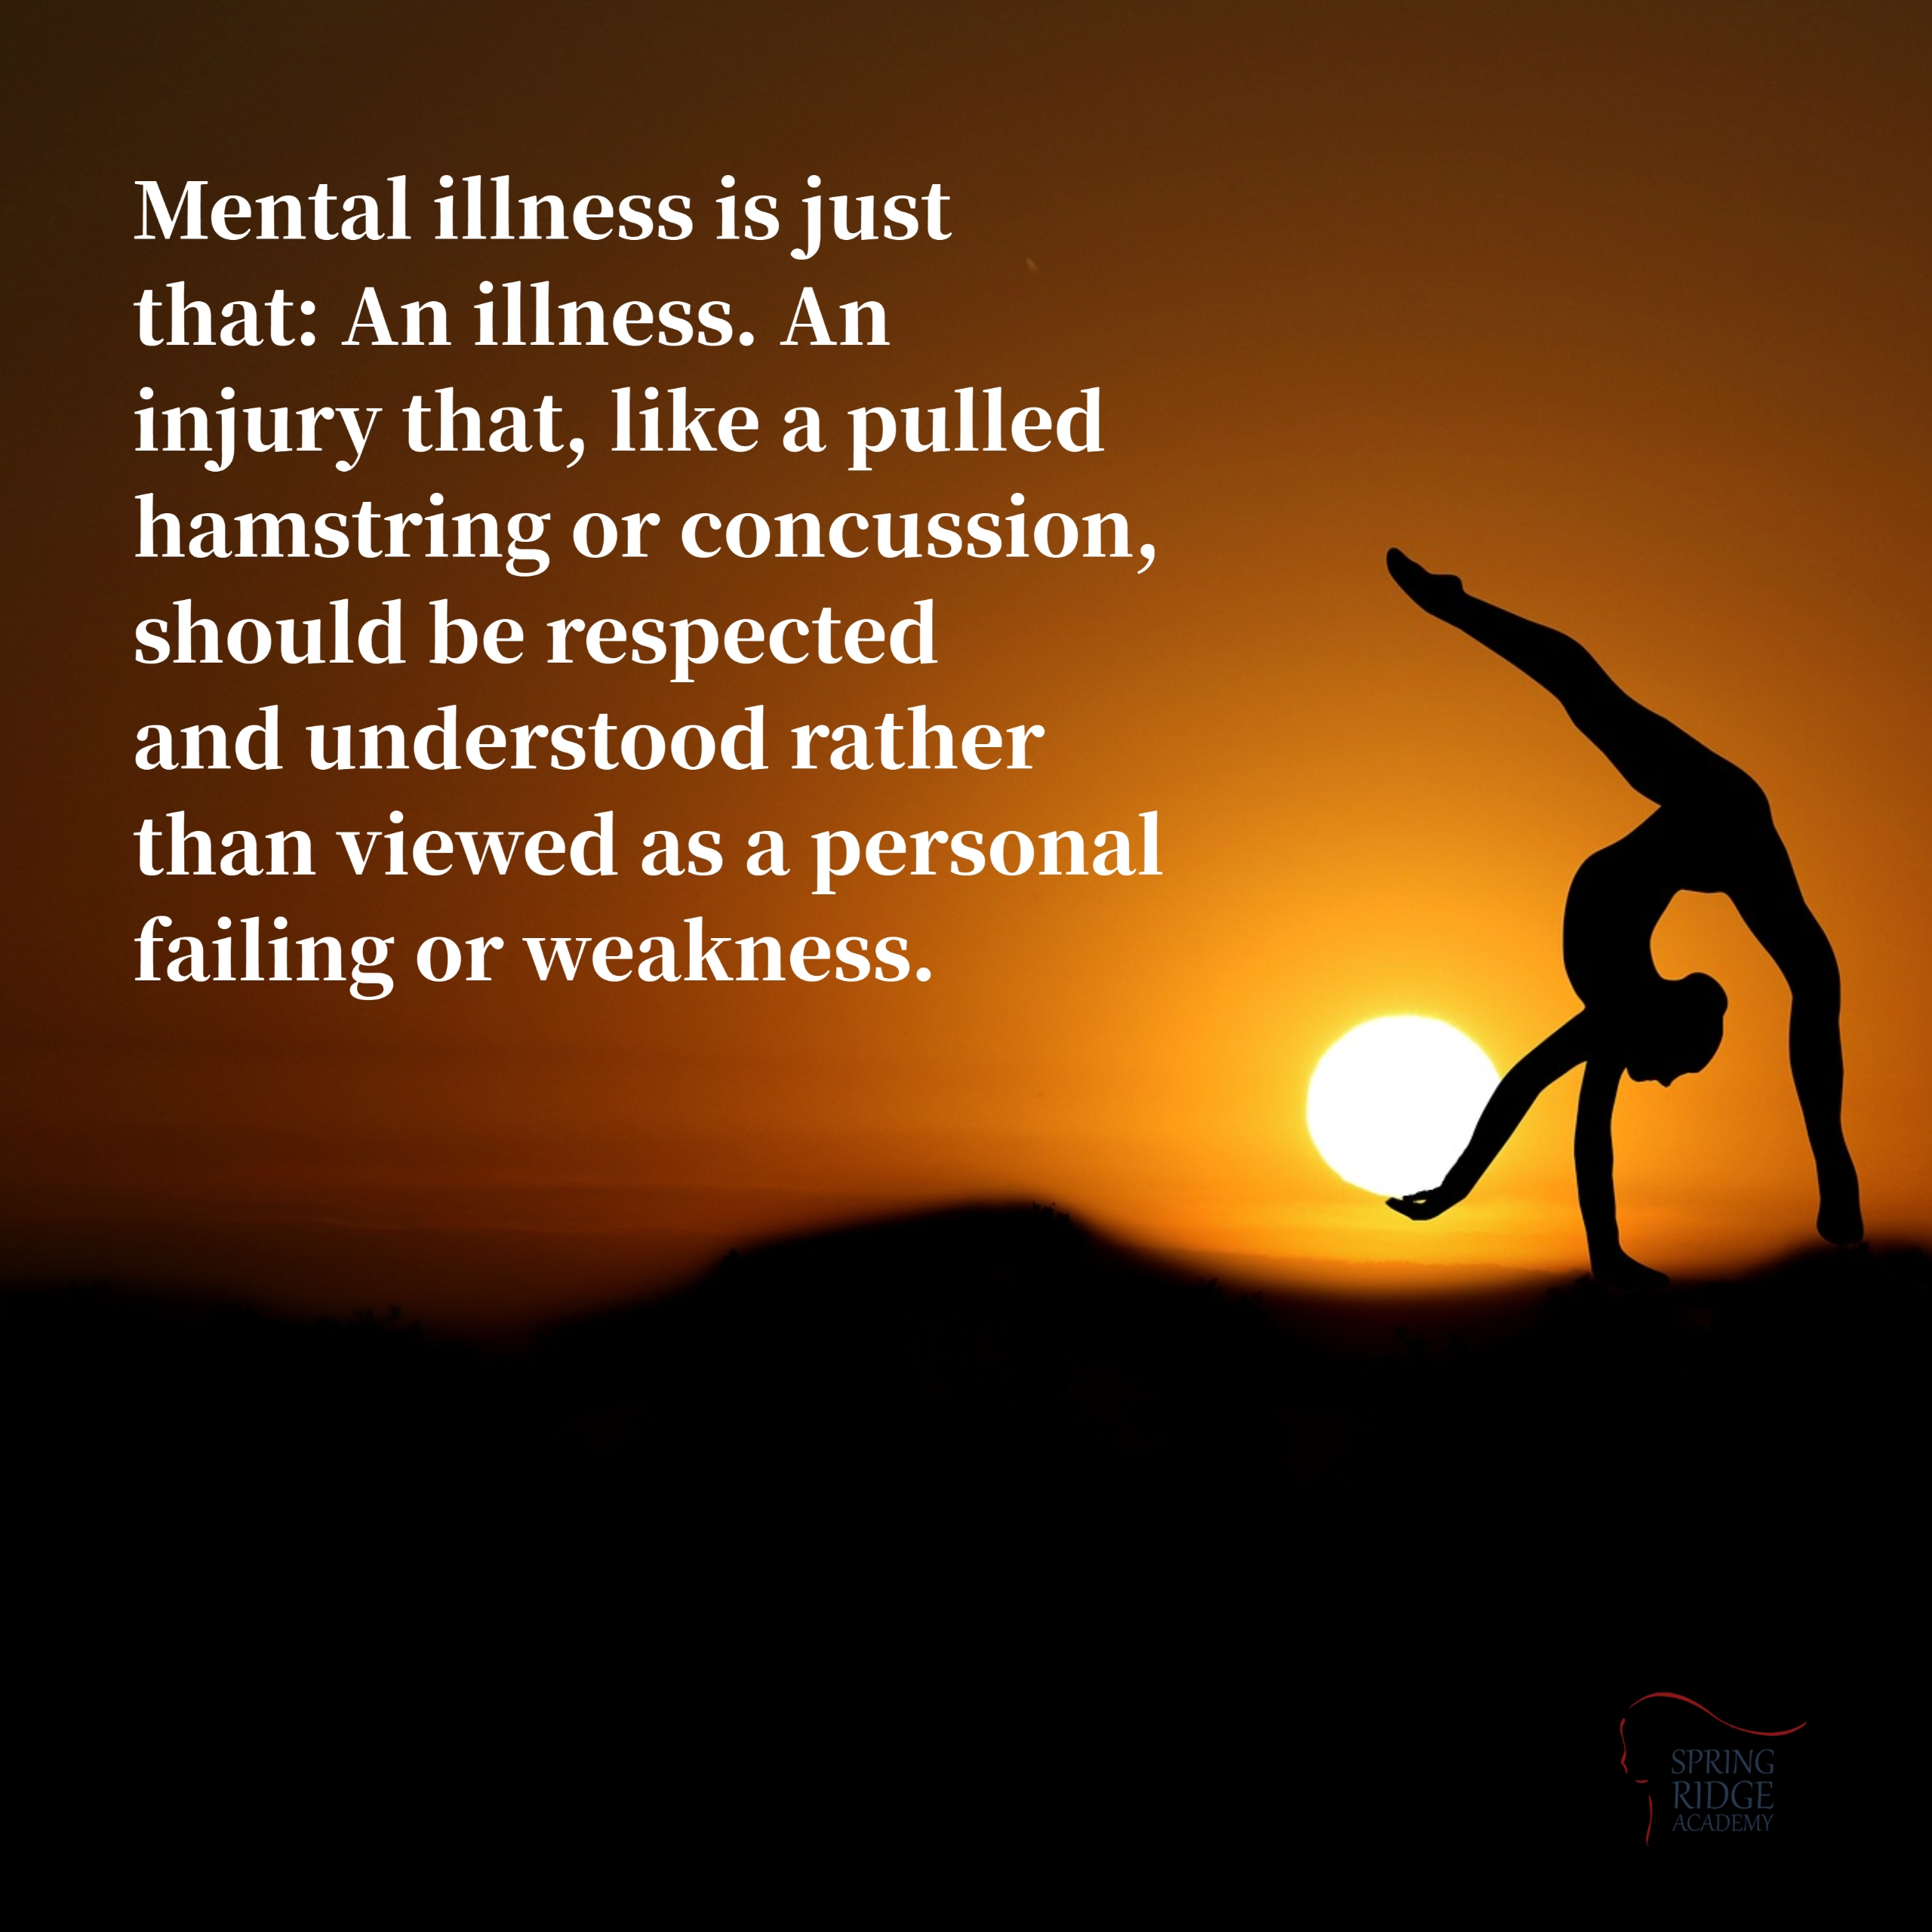 Mental illness is just that: An illness. An injury that, like a pulled hamstring or concussion, should be respected and understood rather than viewed as a personal failing or weakness.